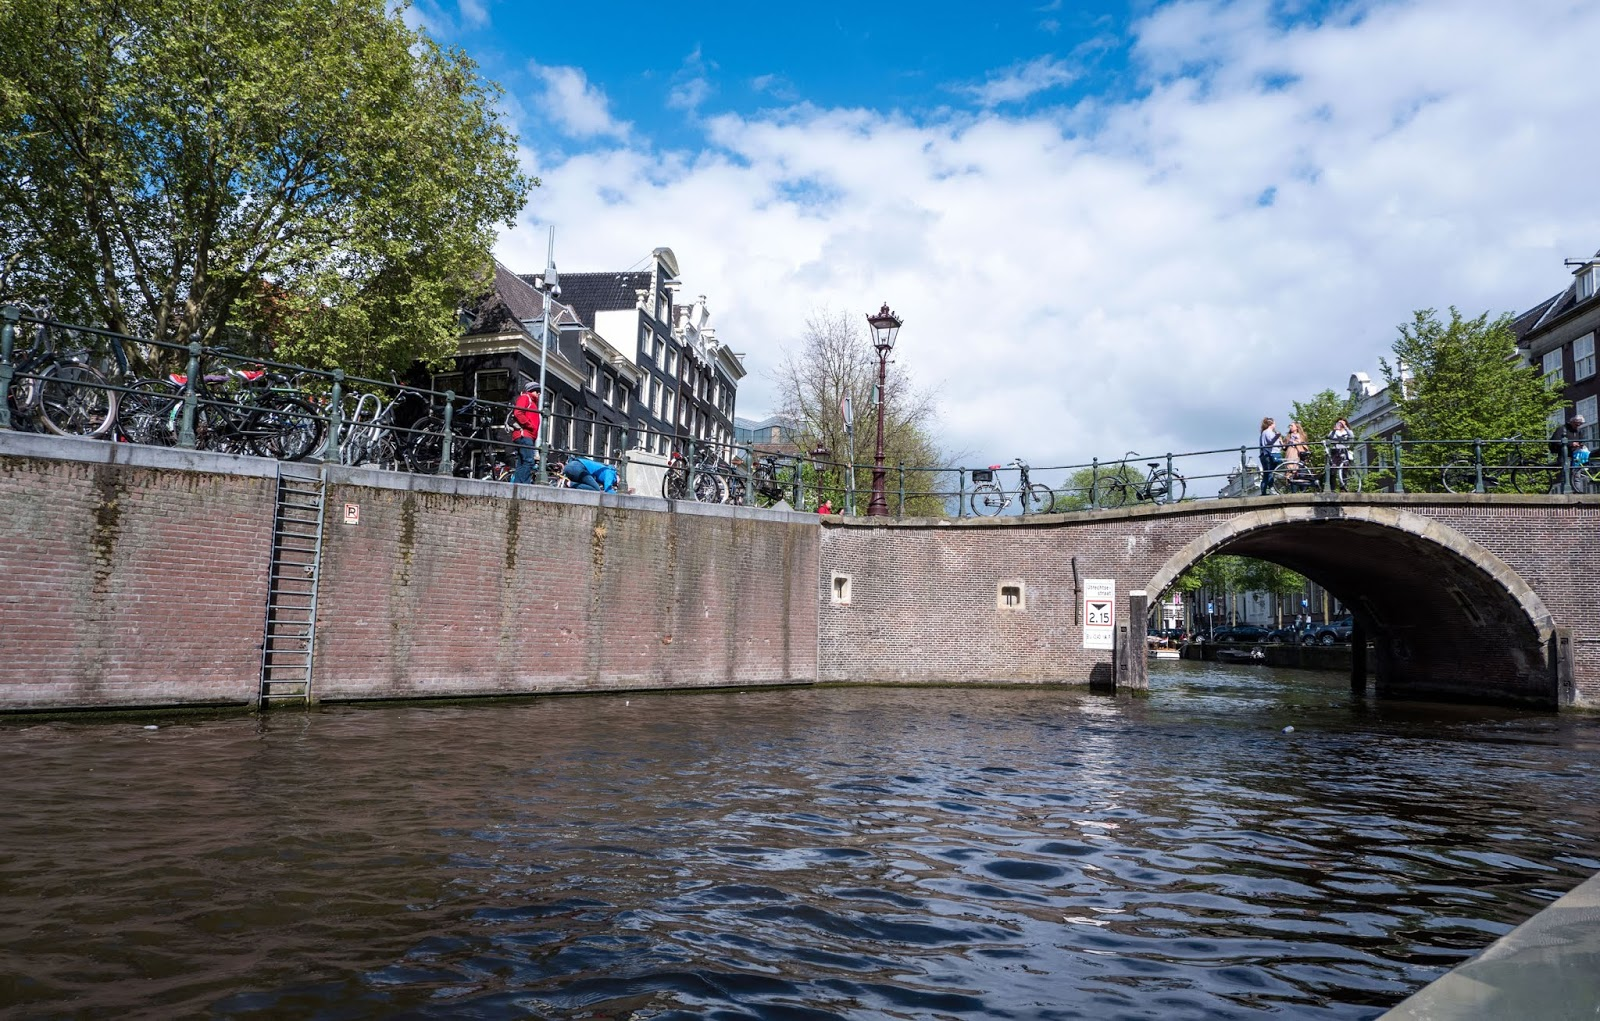 Canal boat tour in Amsterdam, The Netherlands